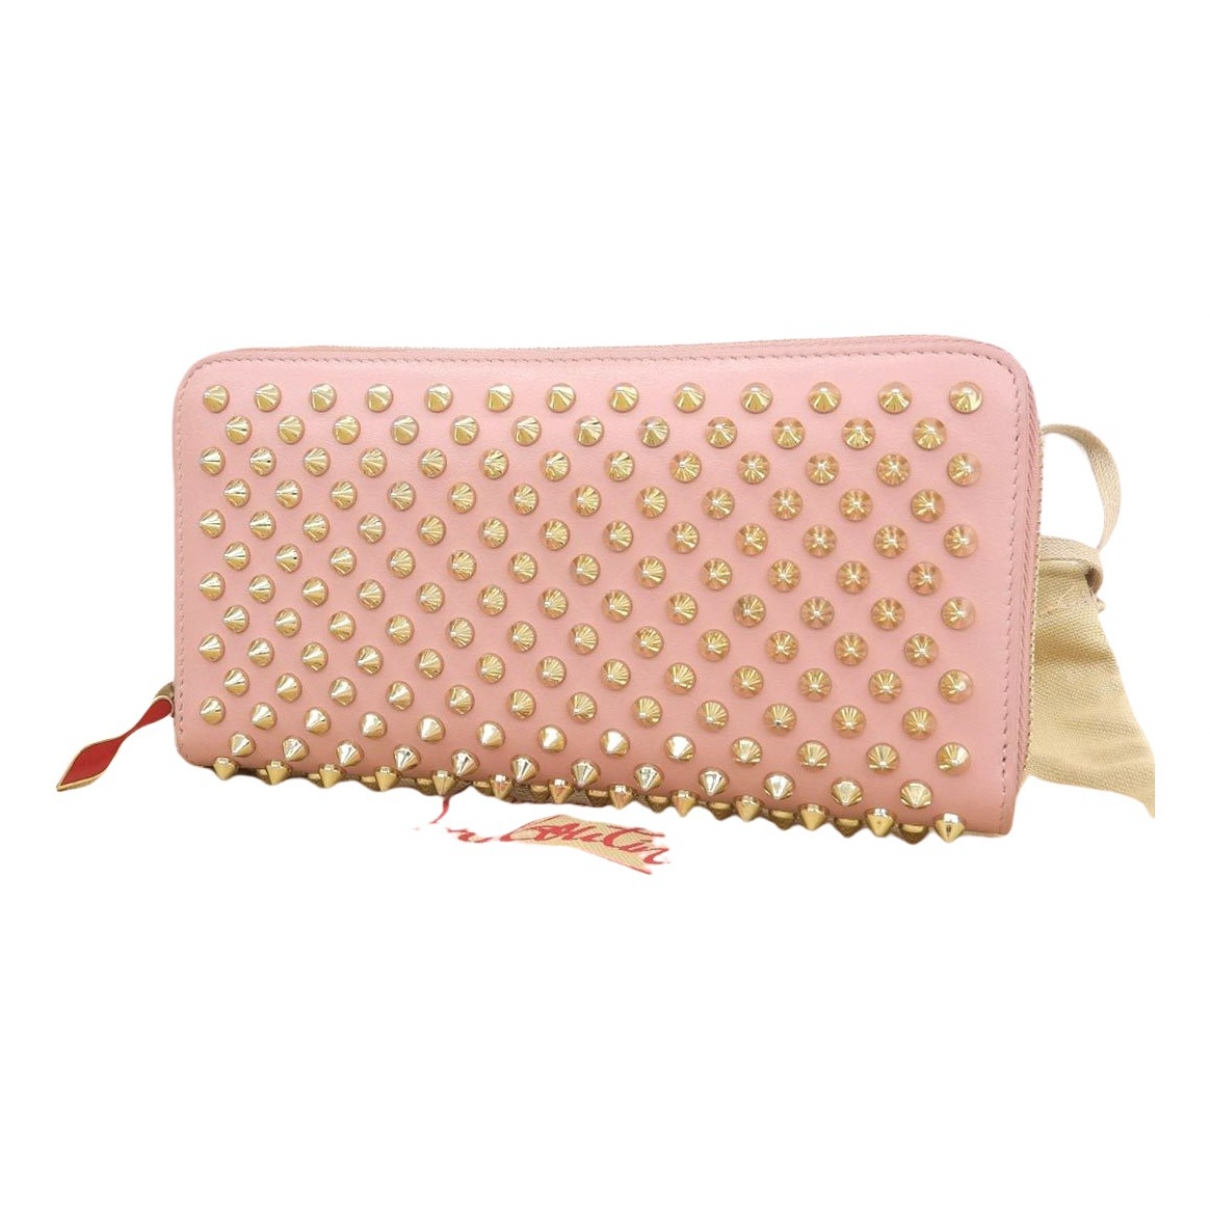 Christian Louboutin Panettone Pink Leather wallet for Women \N